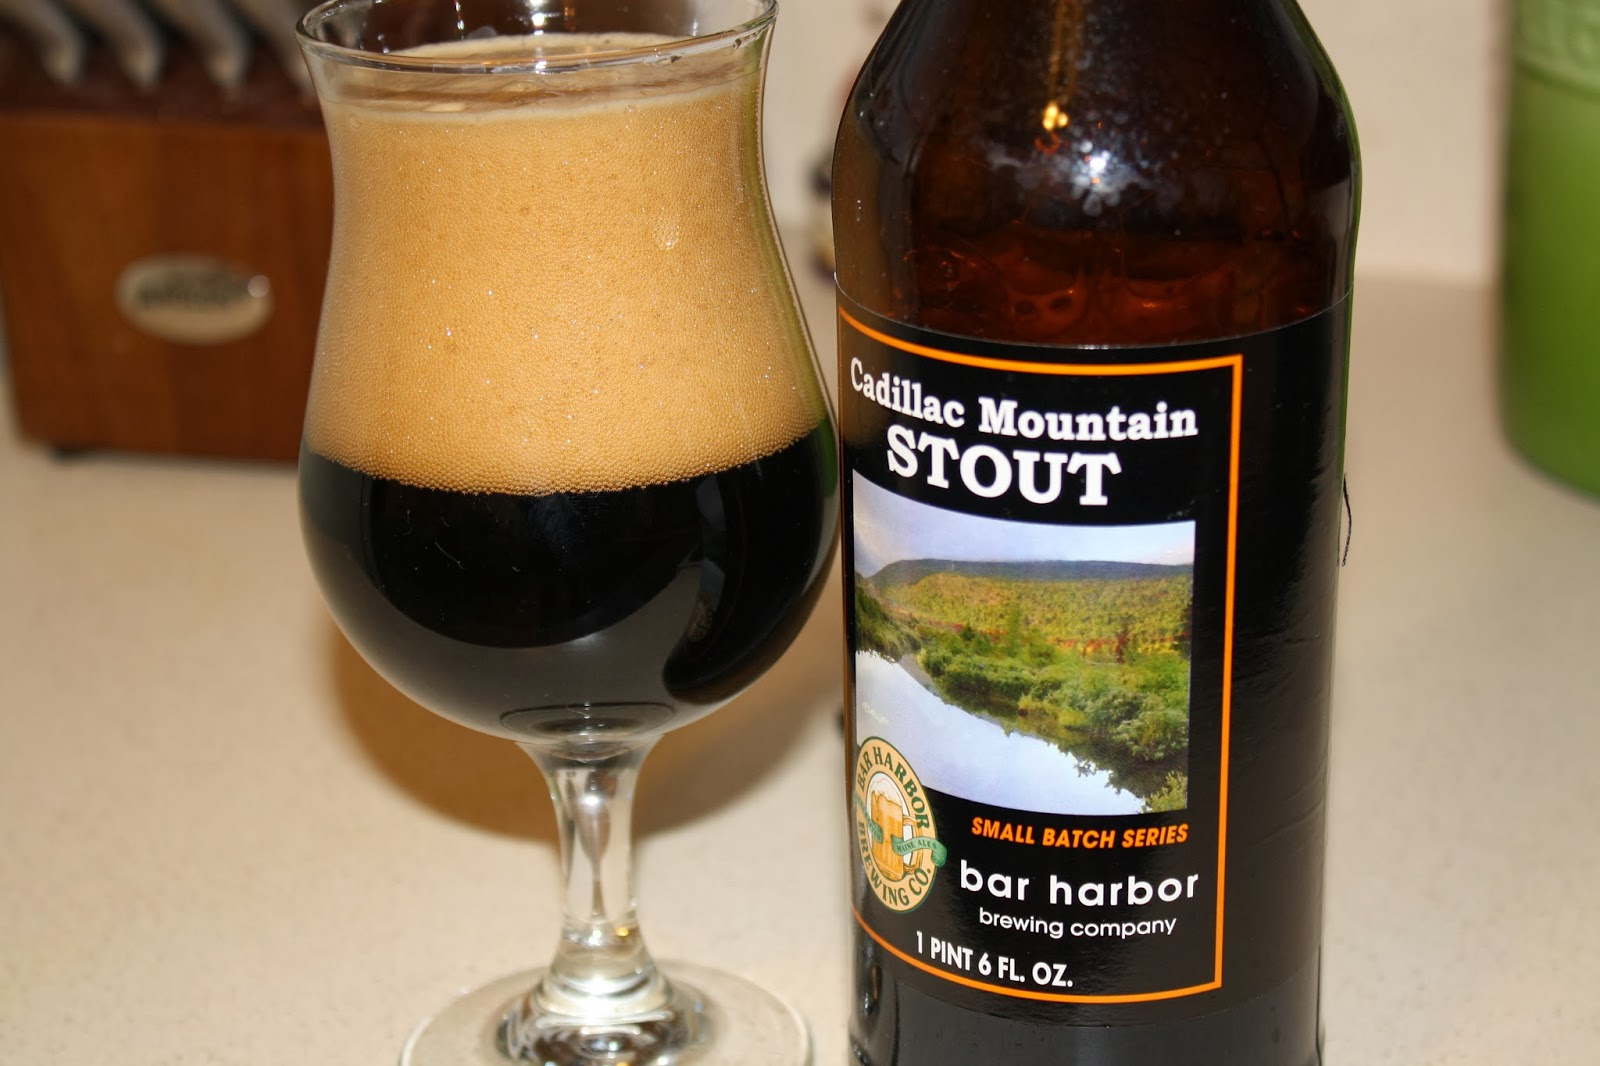 Bar Harbor Brewing, Maine, Acadia National Park, Cadillac Mountain Stout